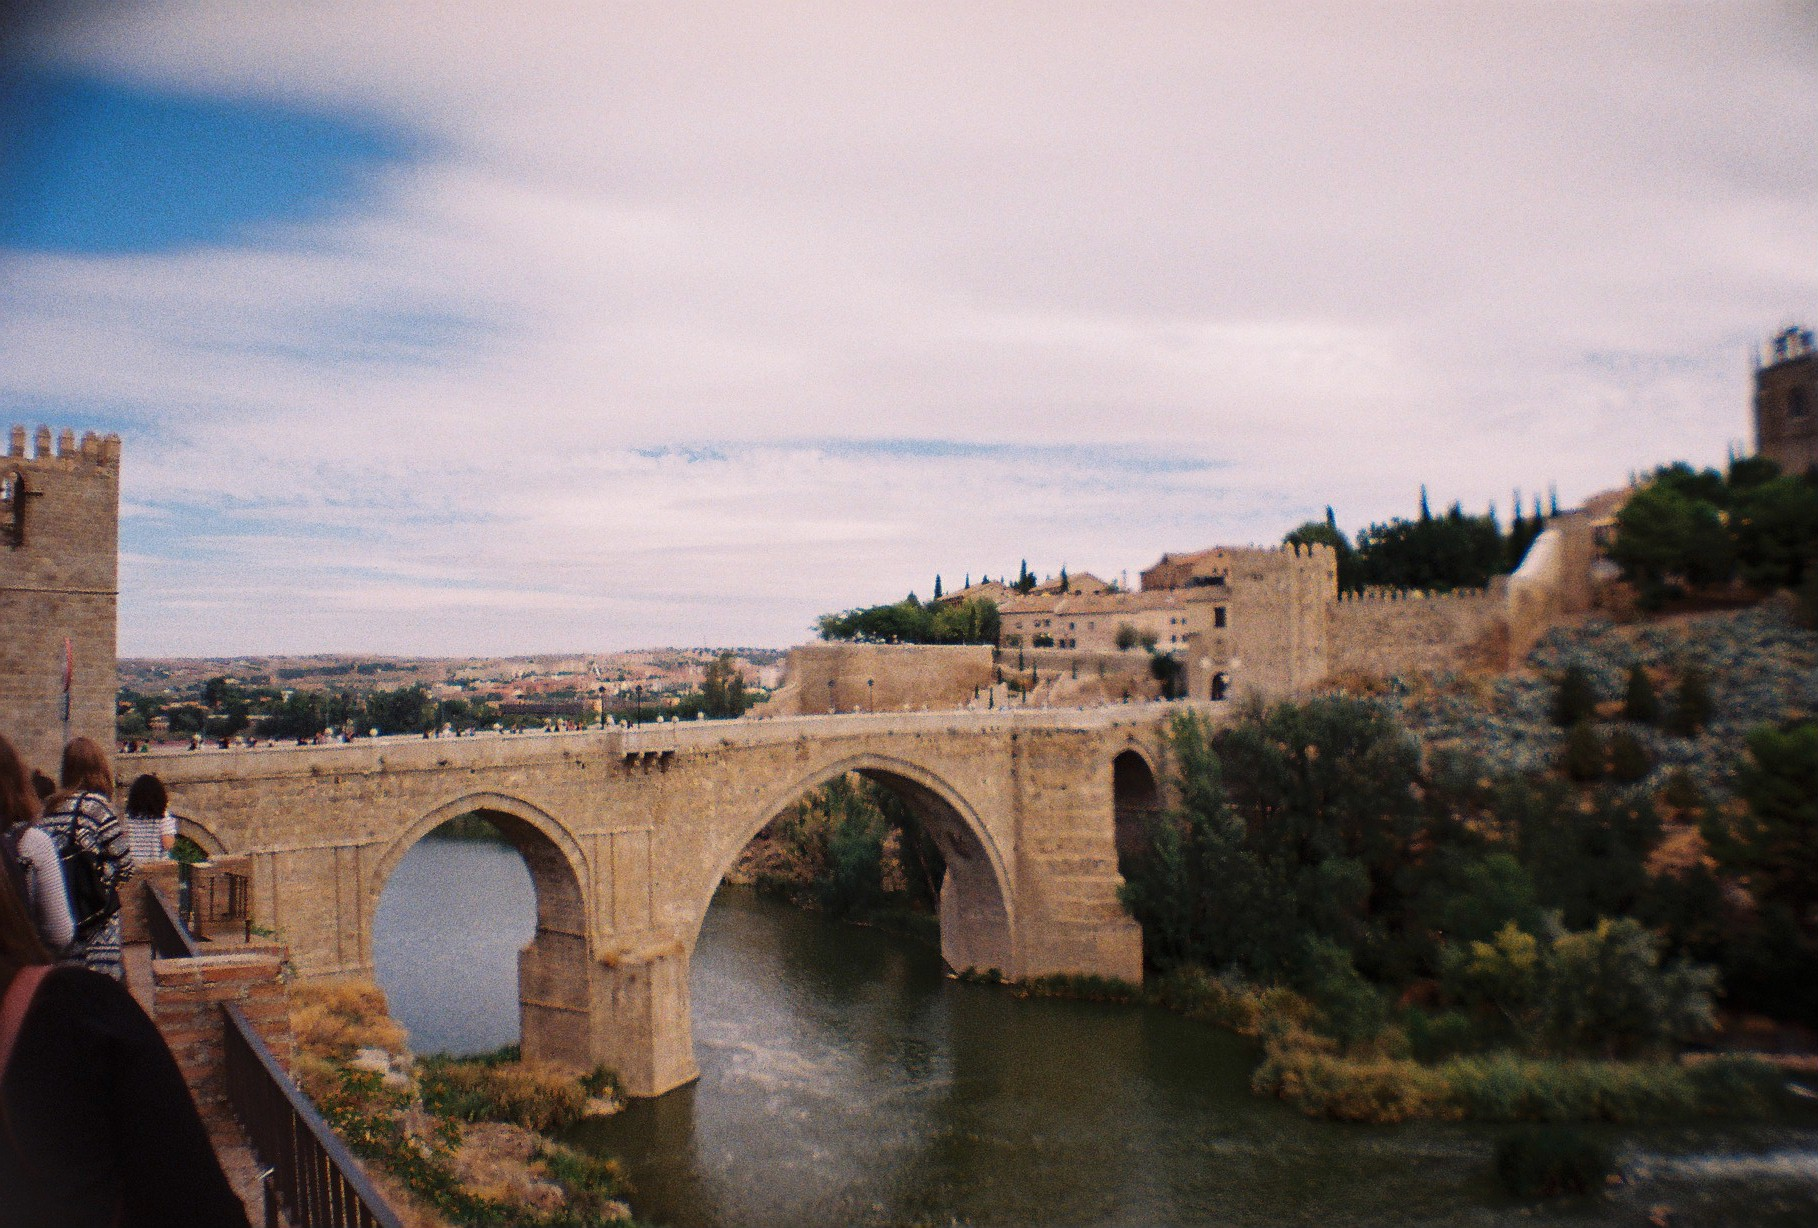 Bridge to Toledo